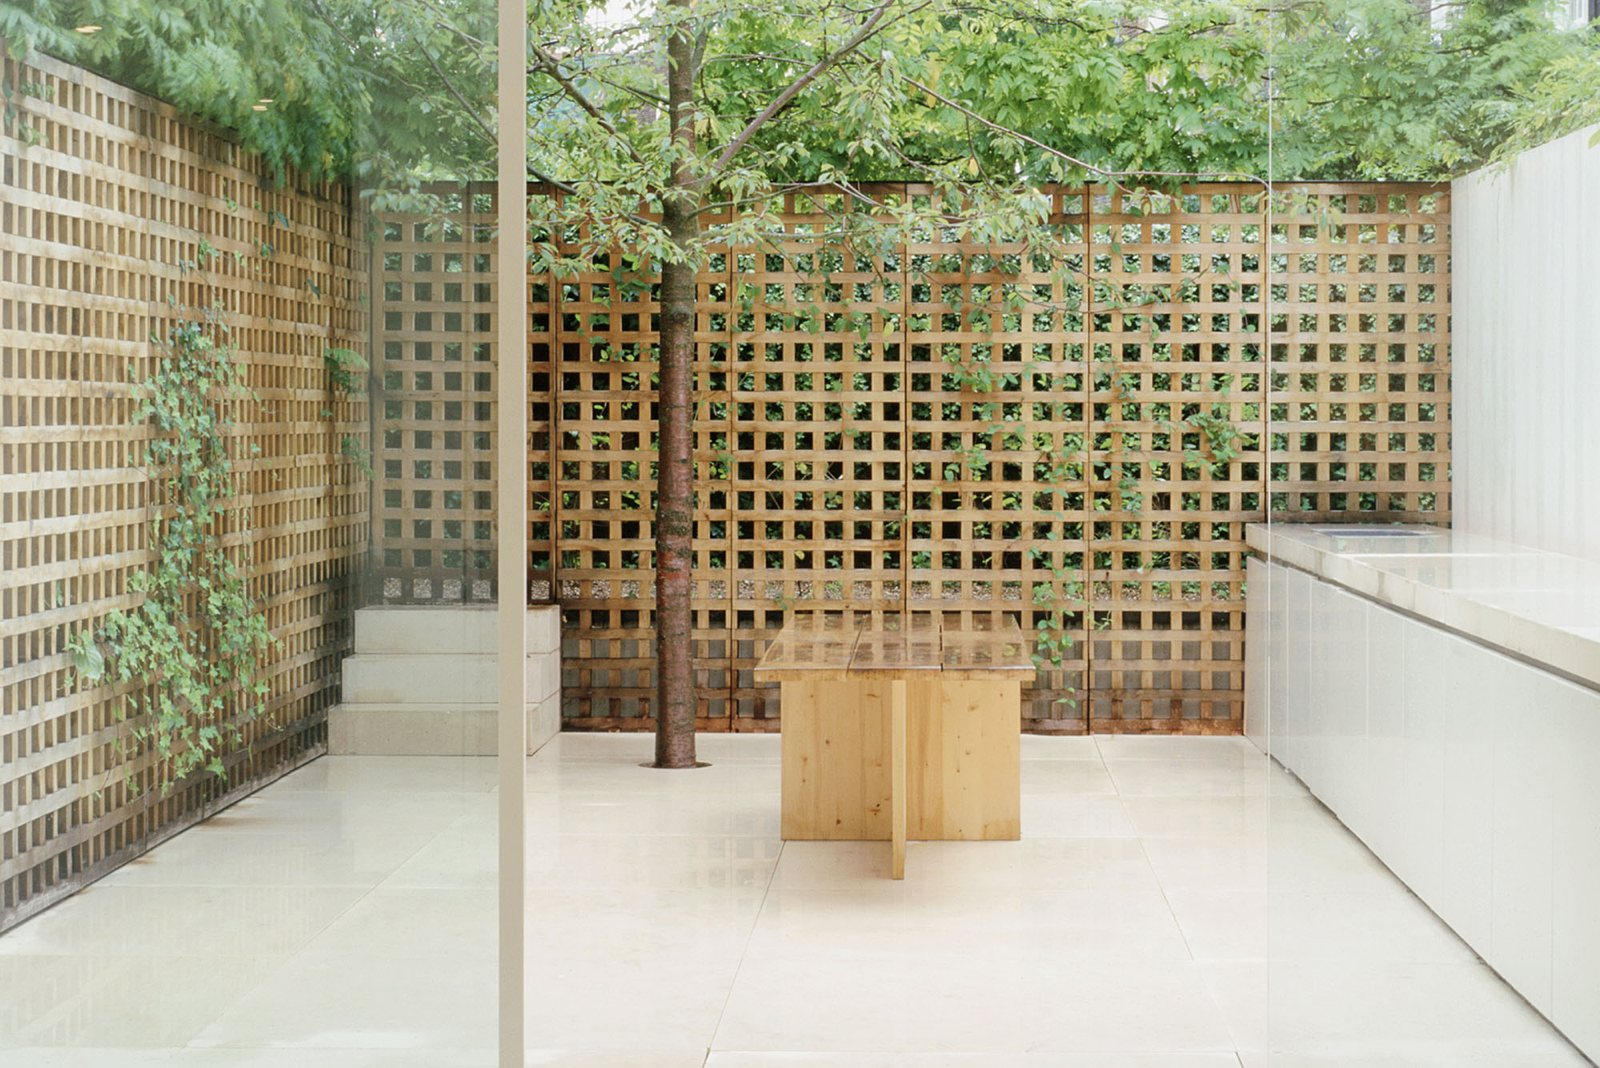 Lattice-walled garden. Pawson House by John Pawson | UP interiors